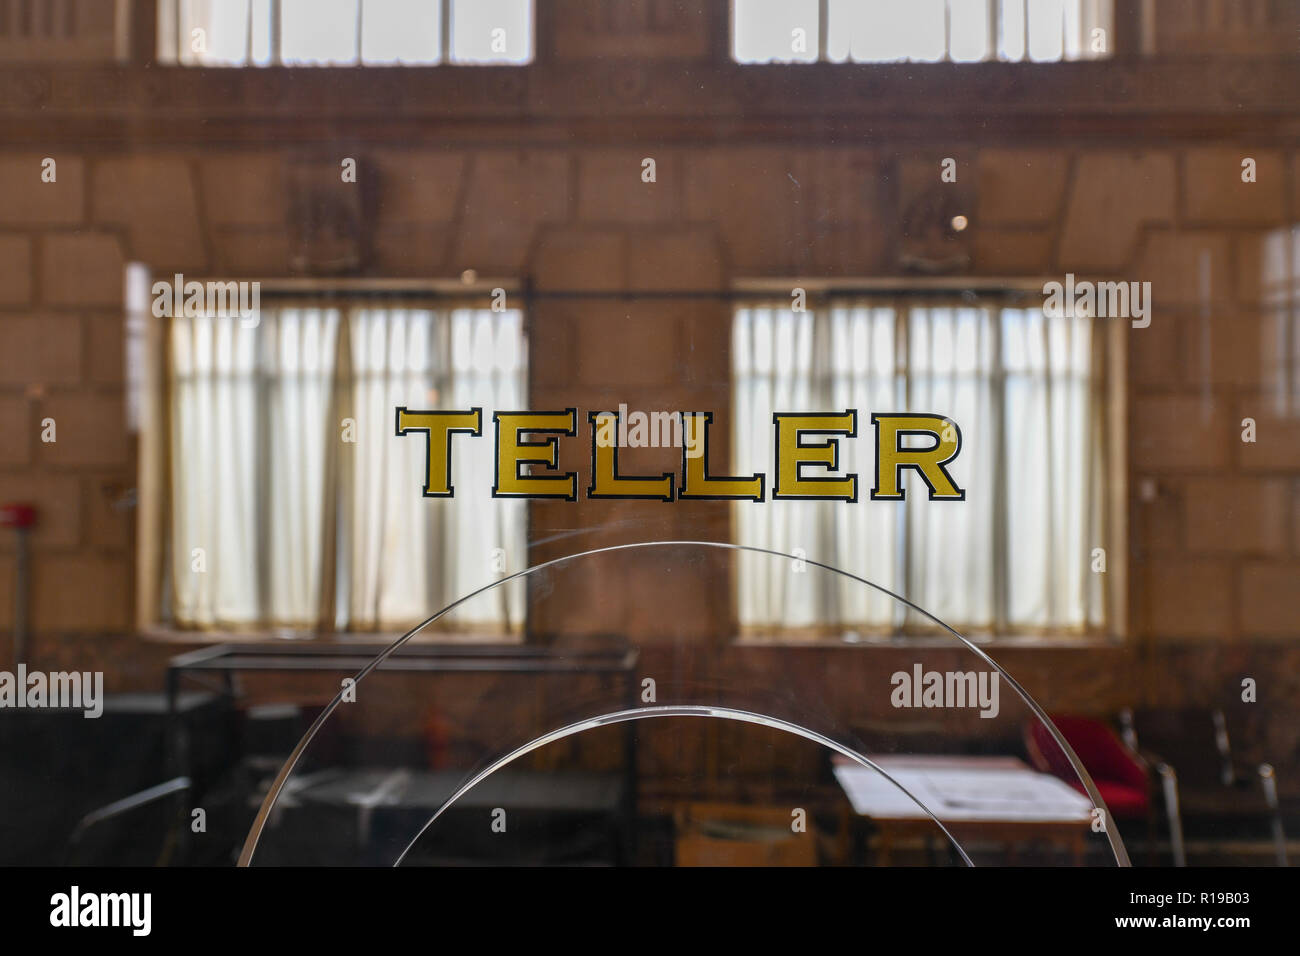 Old fashioned bank teller window sign in a classically styled building. - Stock Image